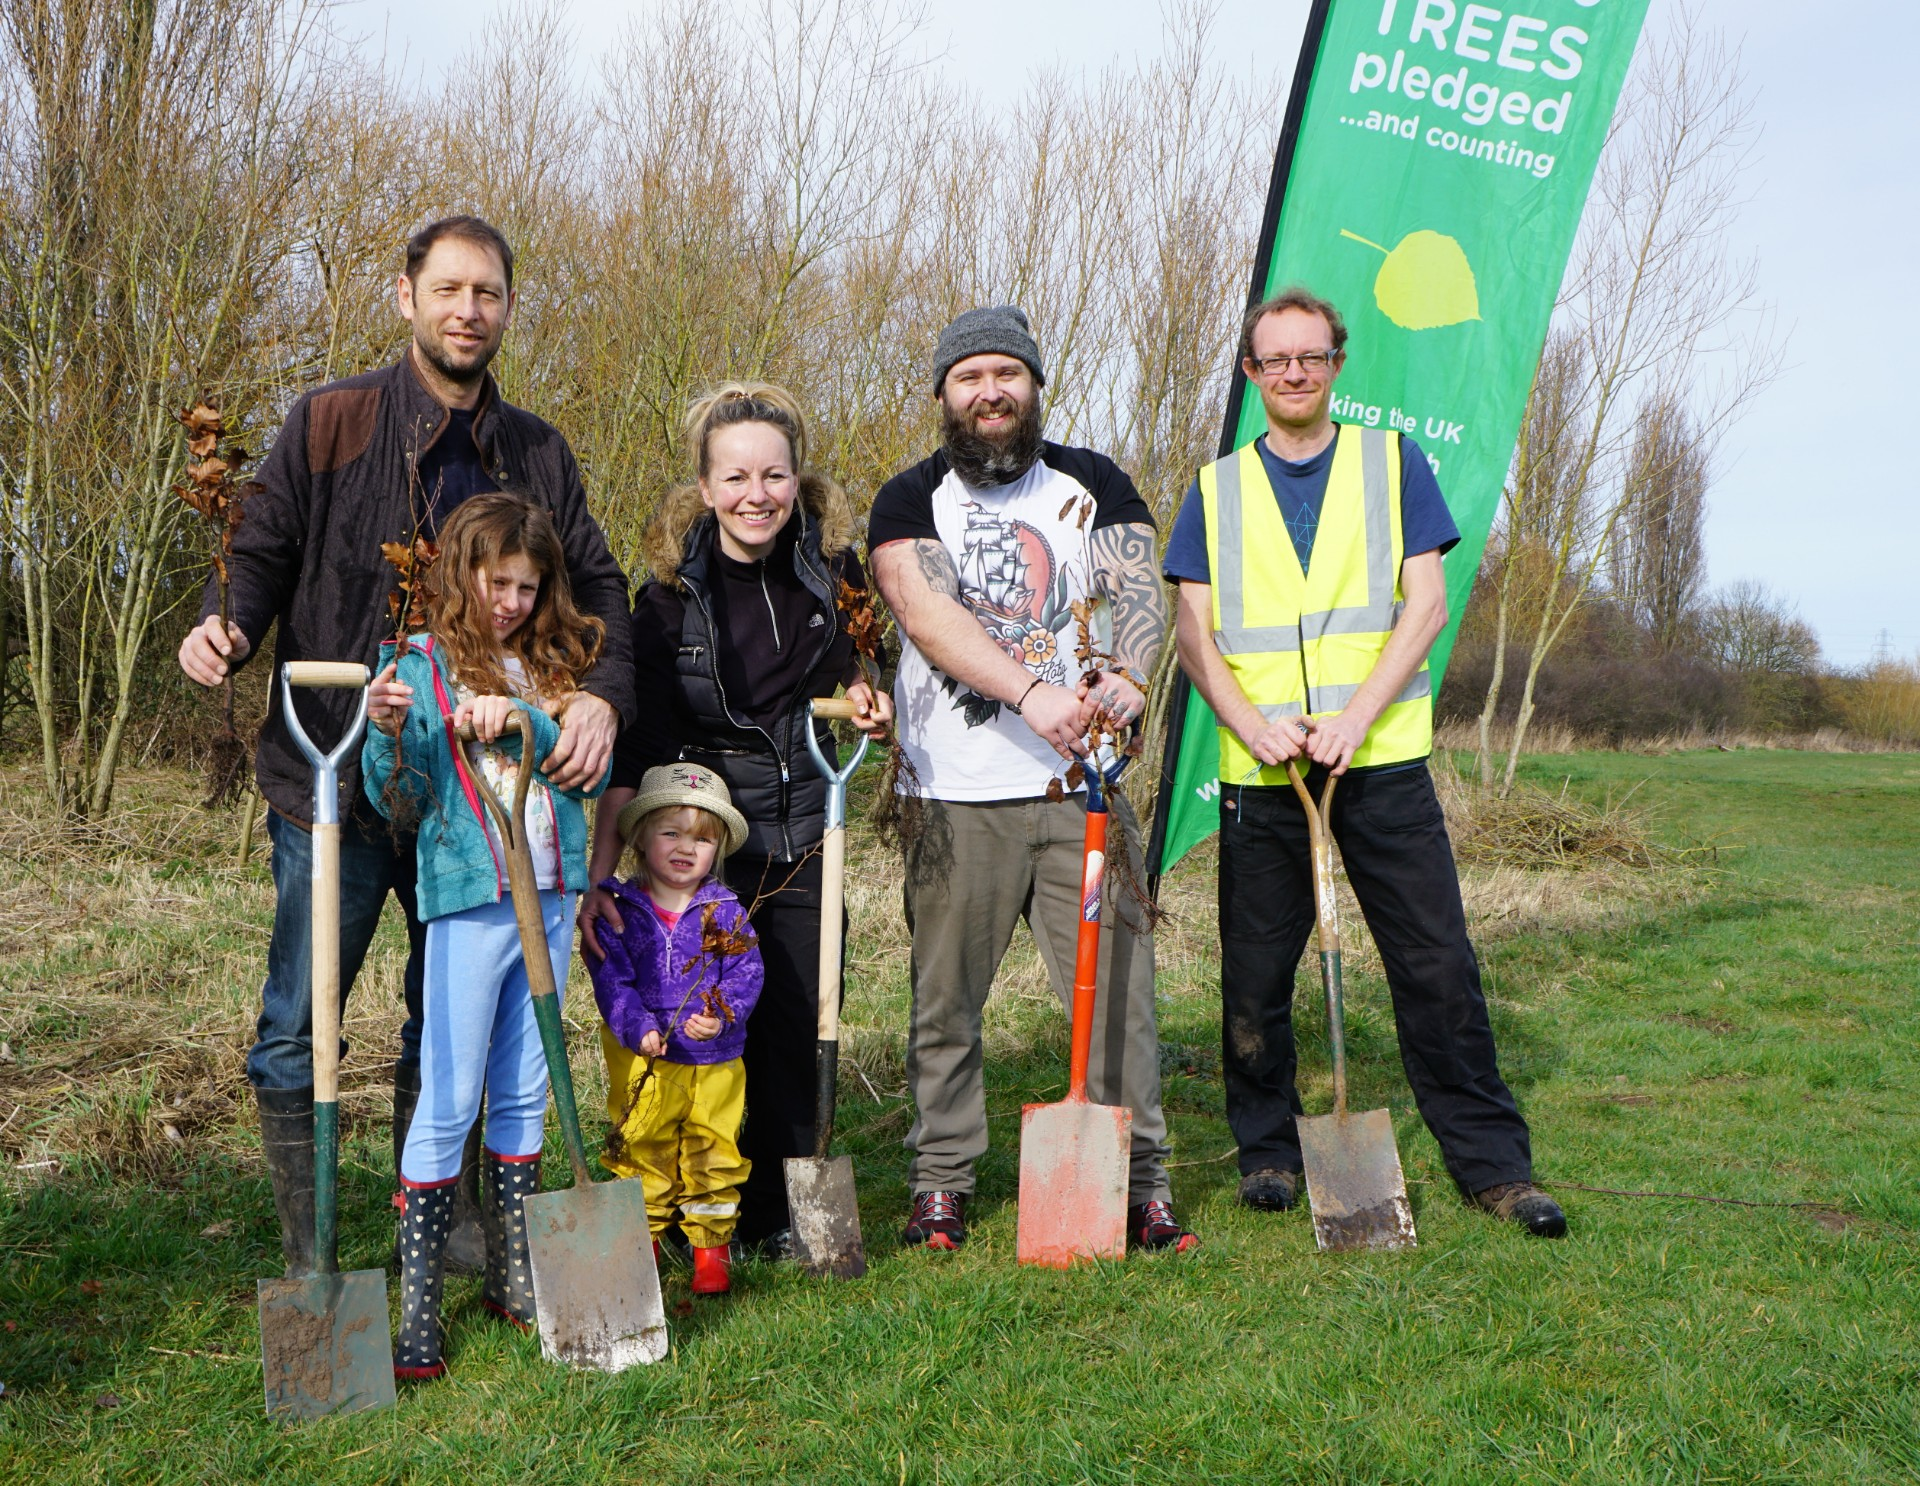 Tree planting at Countess of Chester Country Park